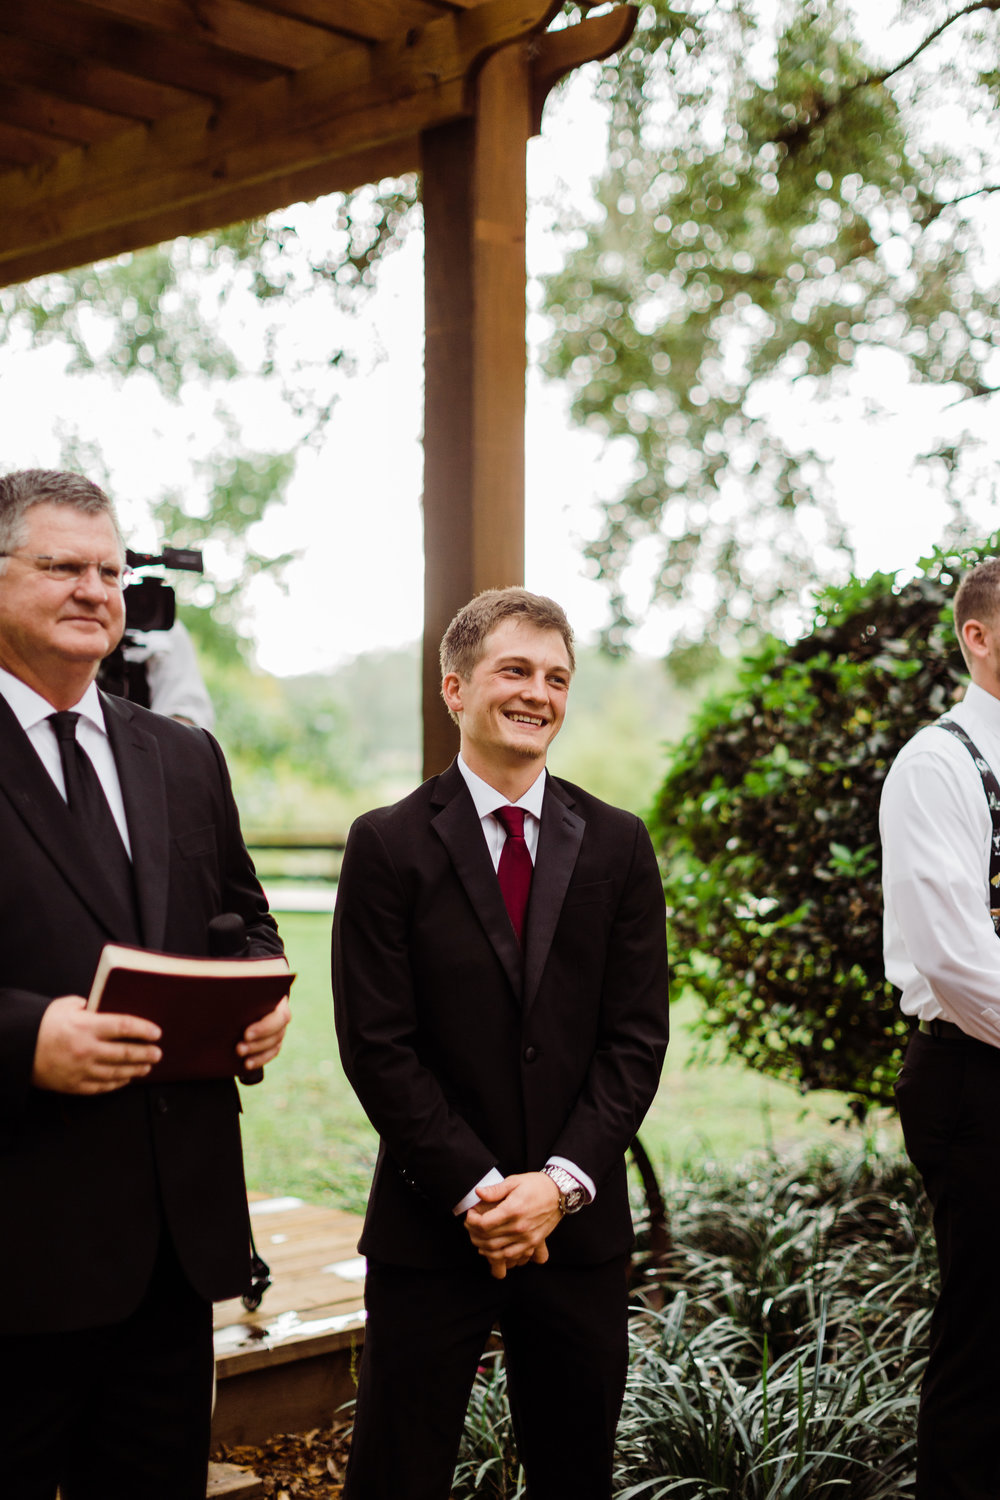 2017.10.08 Zach and Ashley Courson Wedding Club Lake Plantation (292 of 1079).jpg